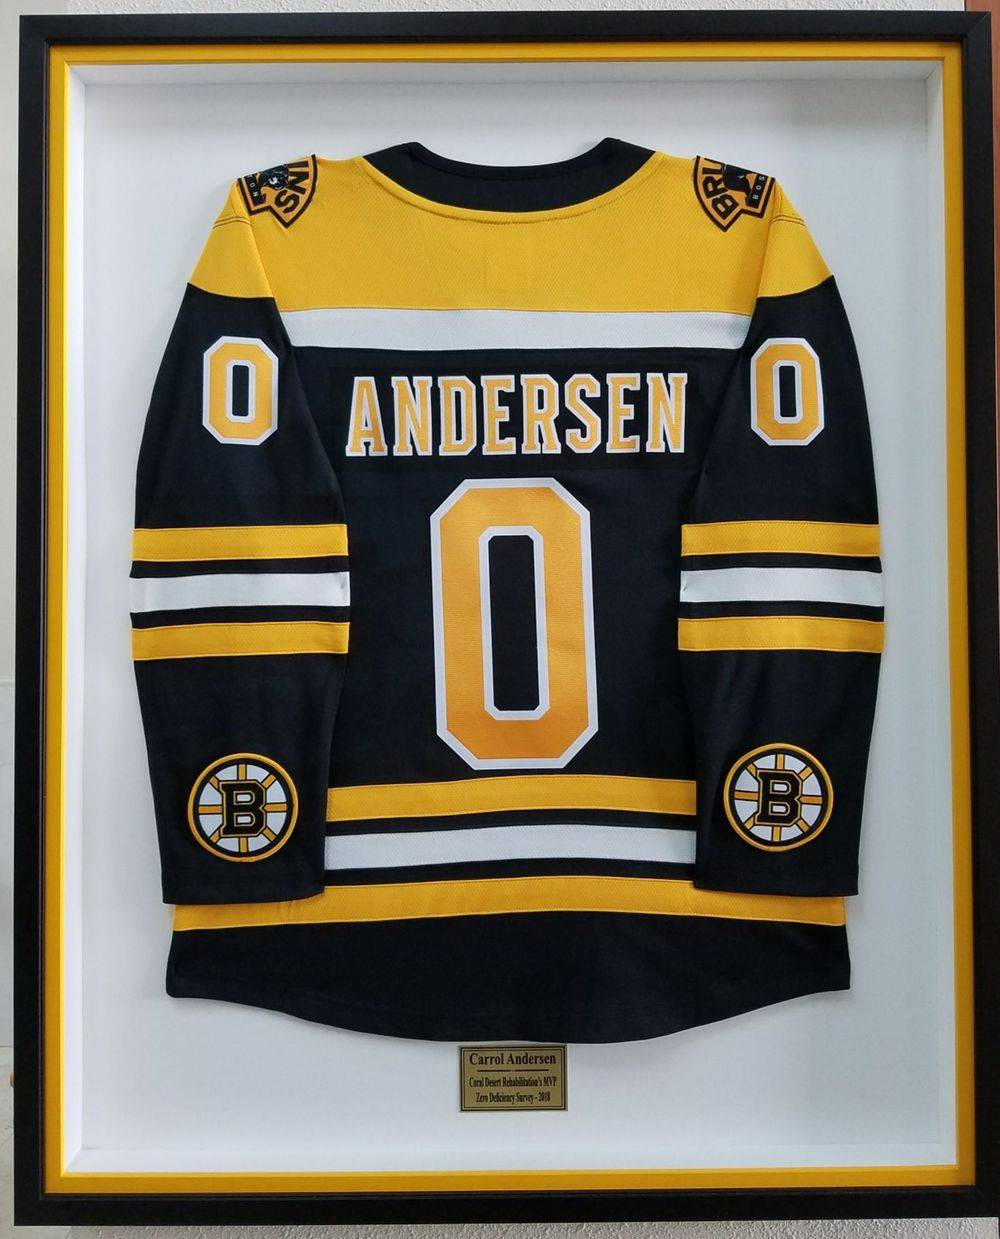 Custom framed sports jersey